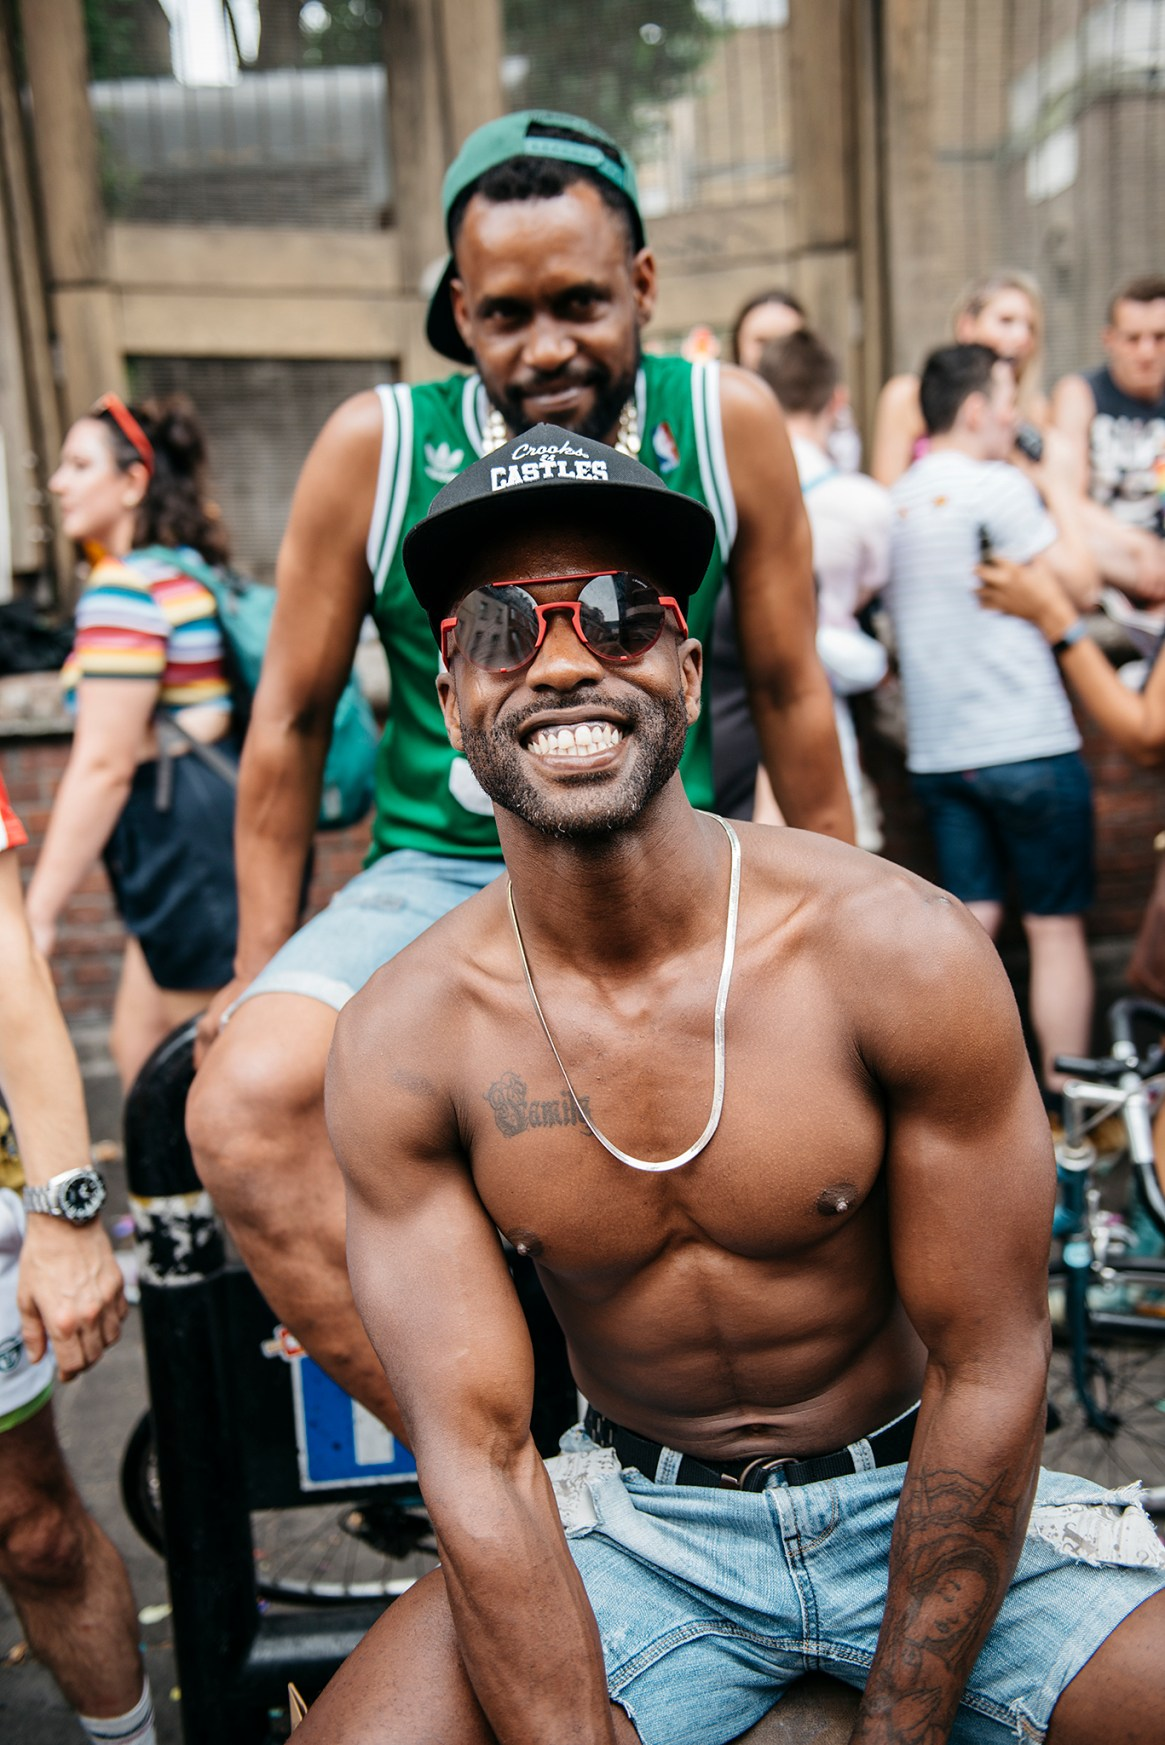 Two men smile and pose at the Pride in London 2019 afterparty in Soho